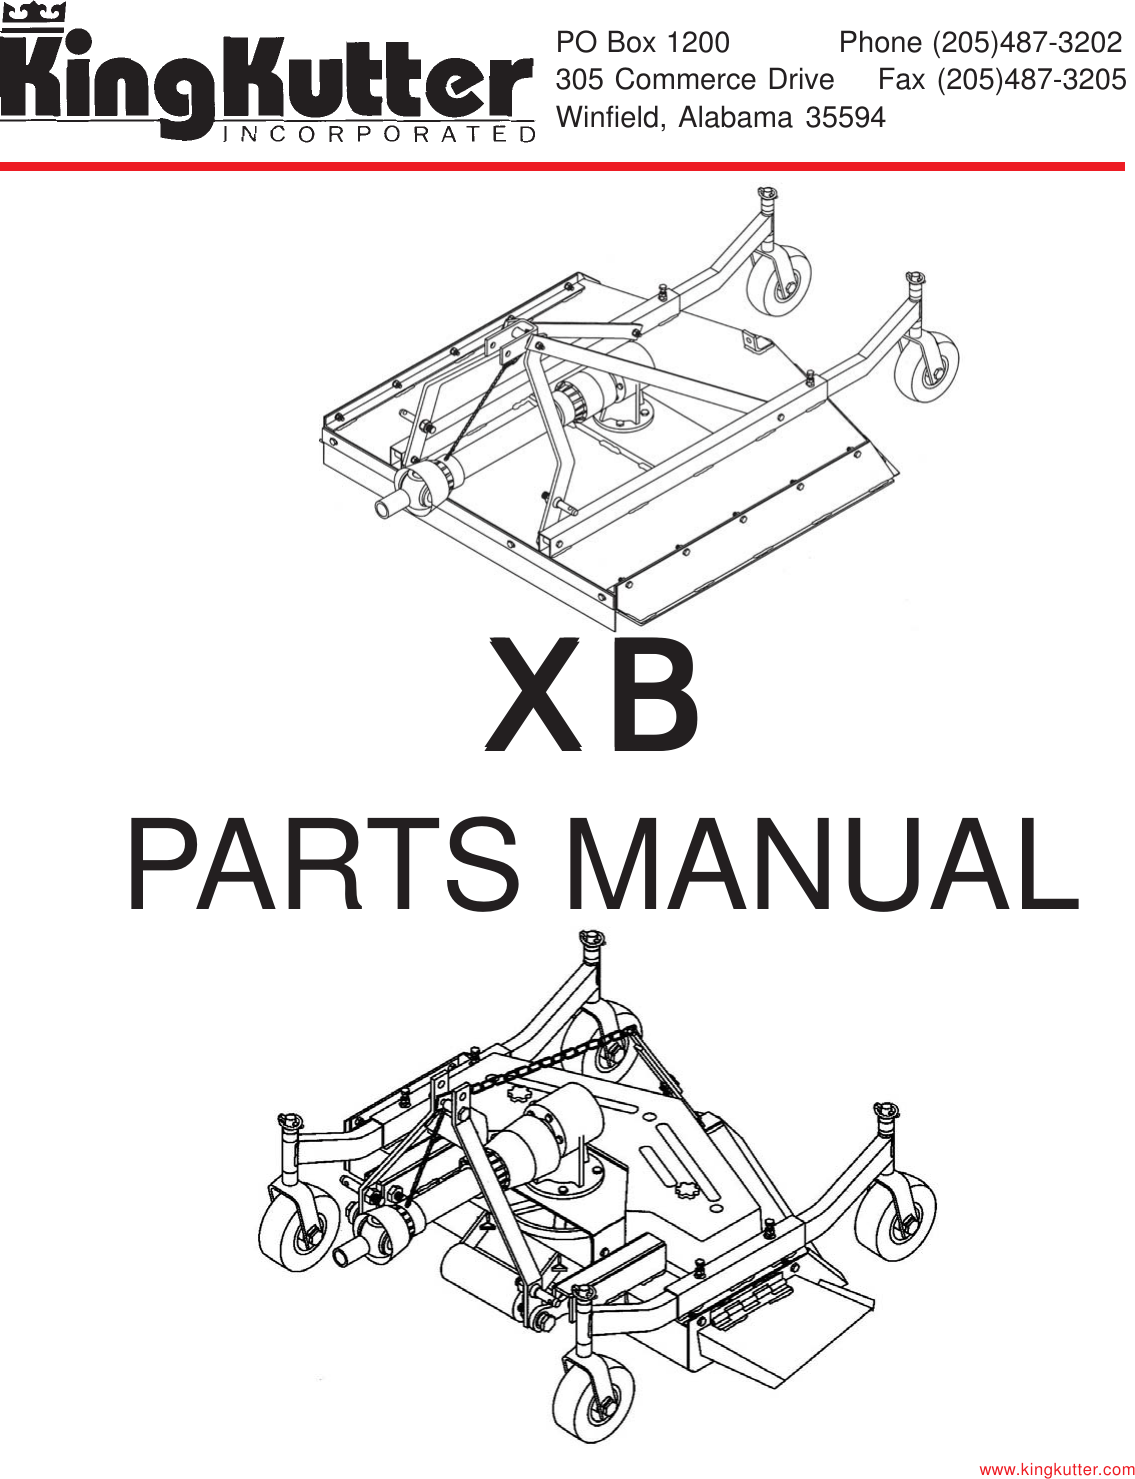 King Kutter Xb Users Manual PARTS